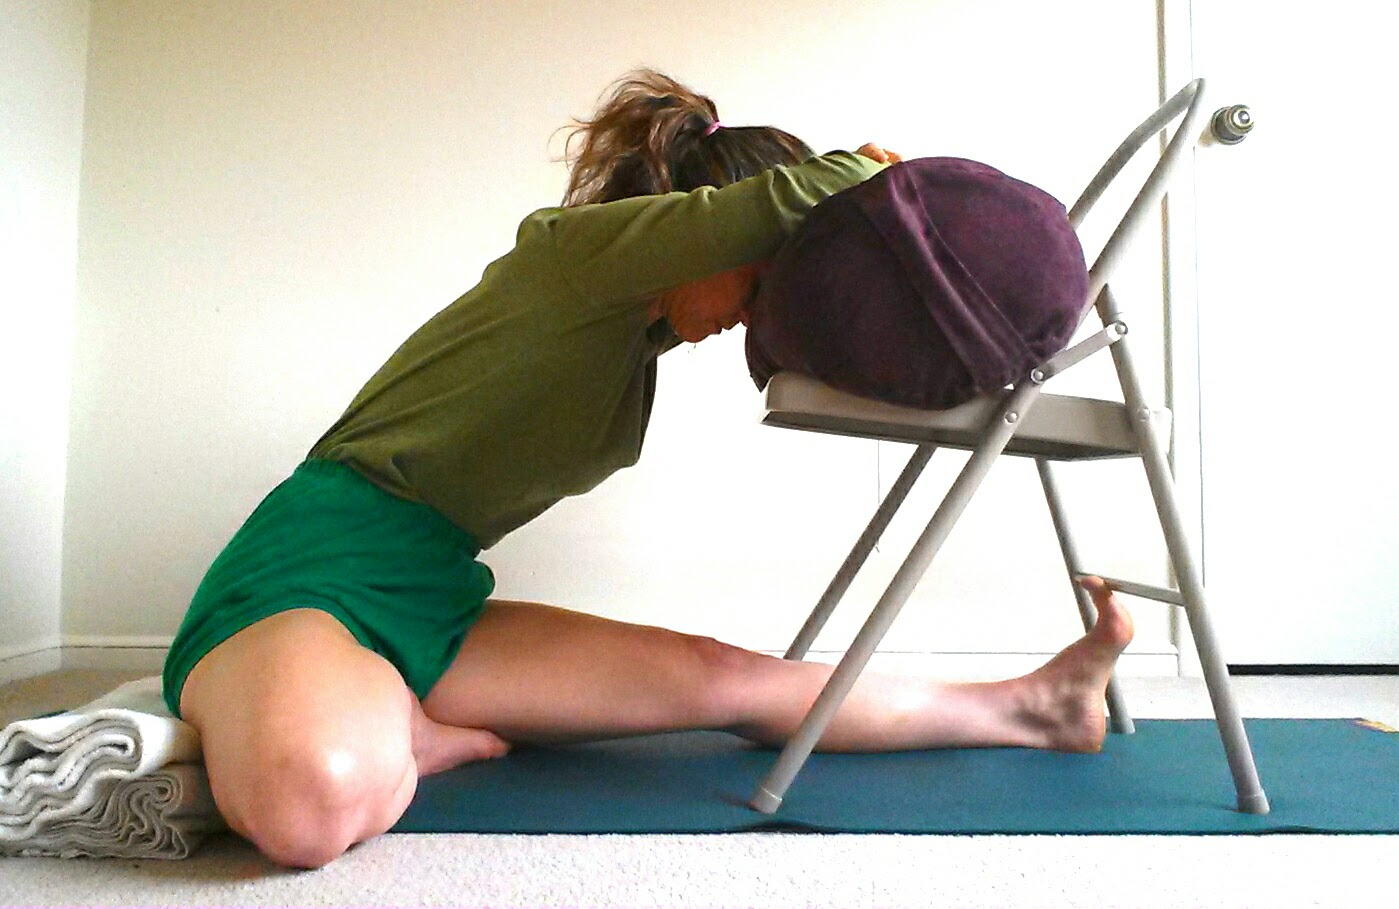 janu sirsasana with chair support.jpg